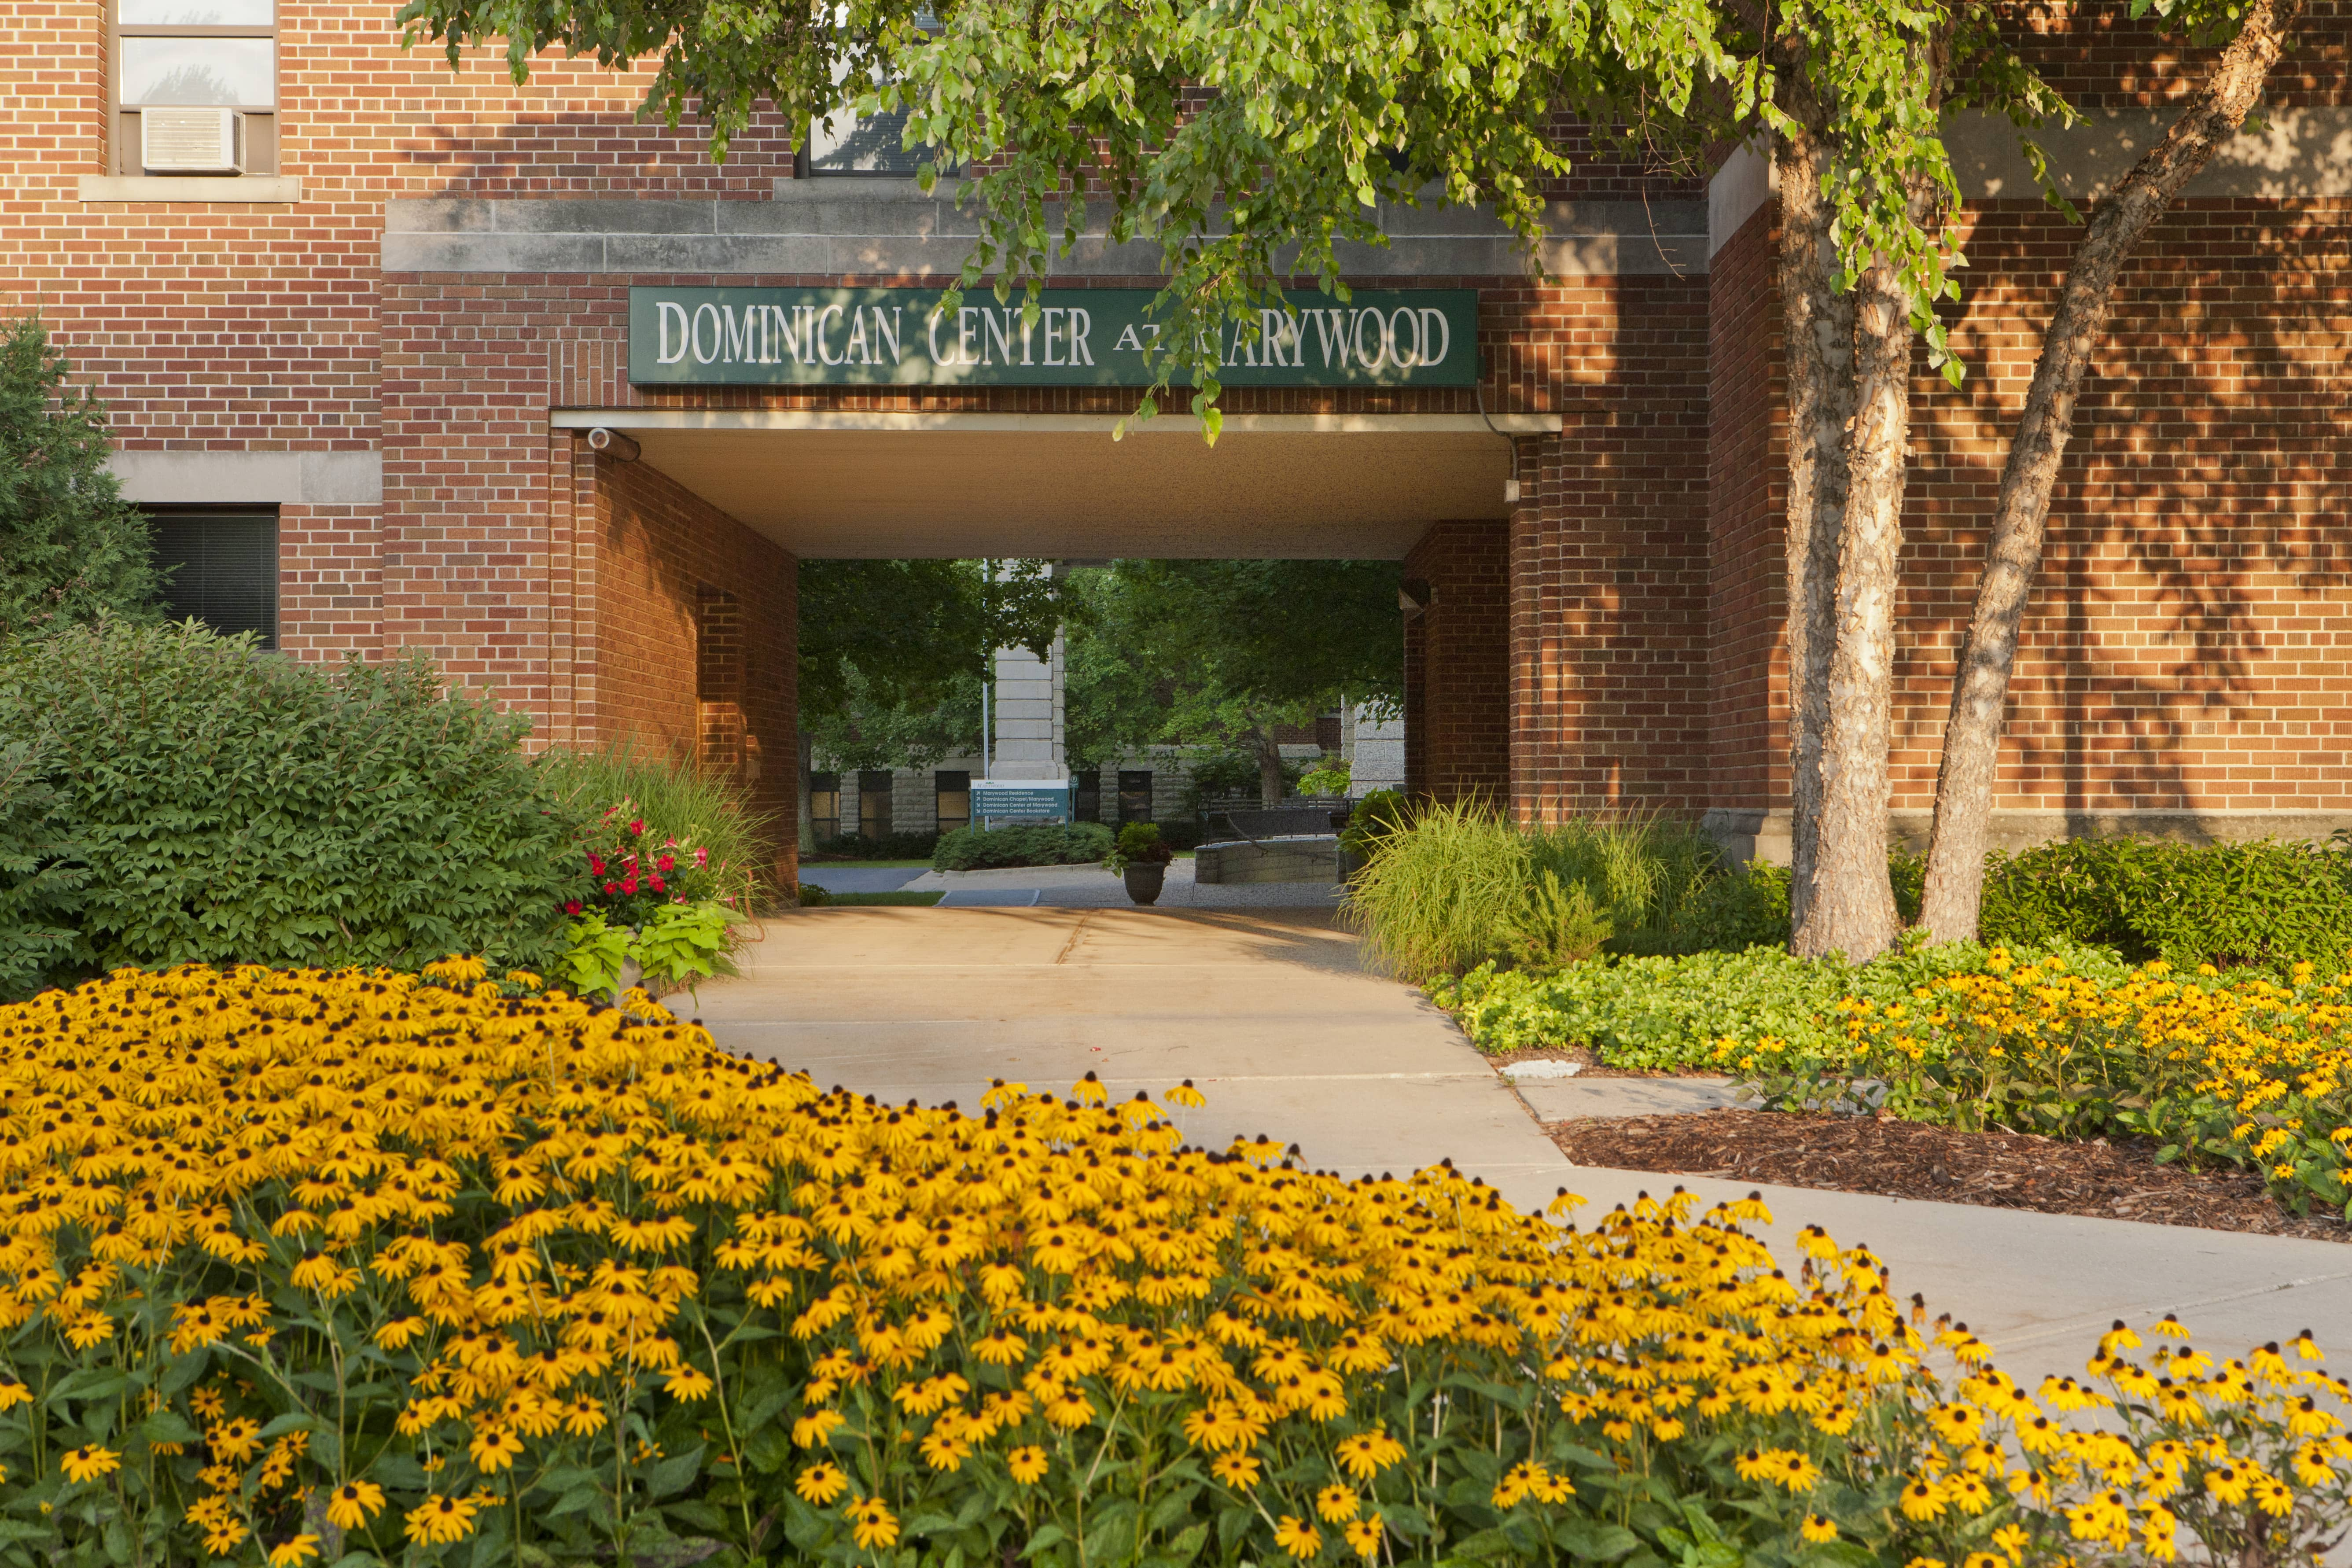 Marywood Campus - Dominican Sisters